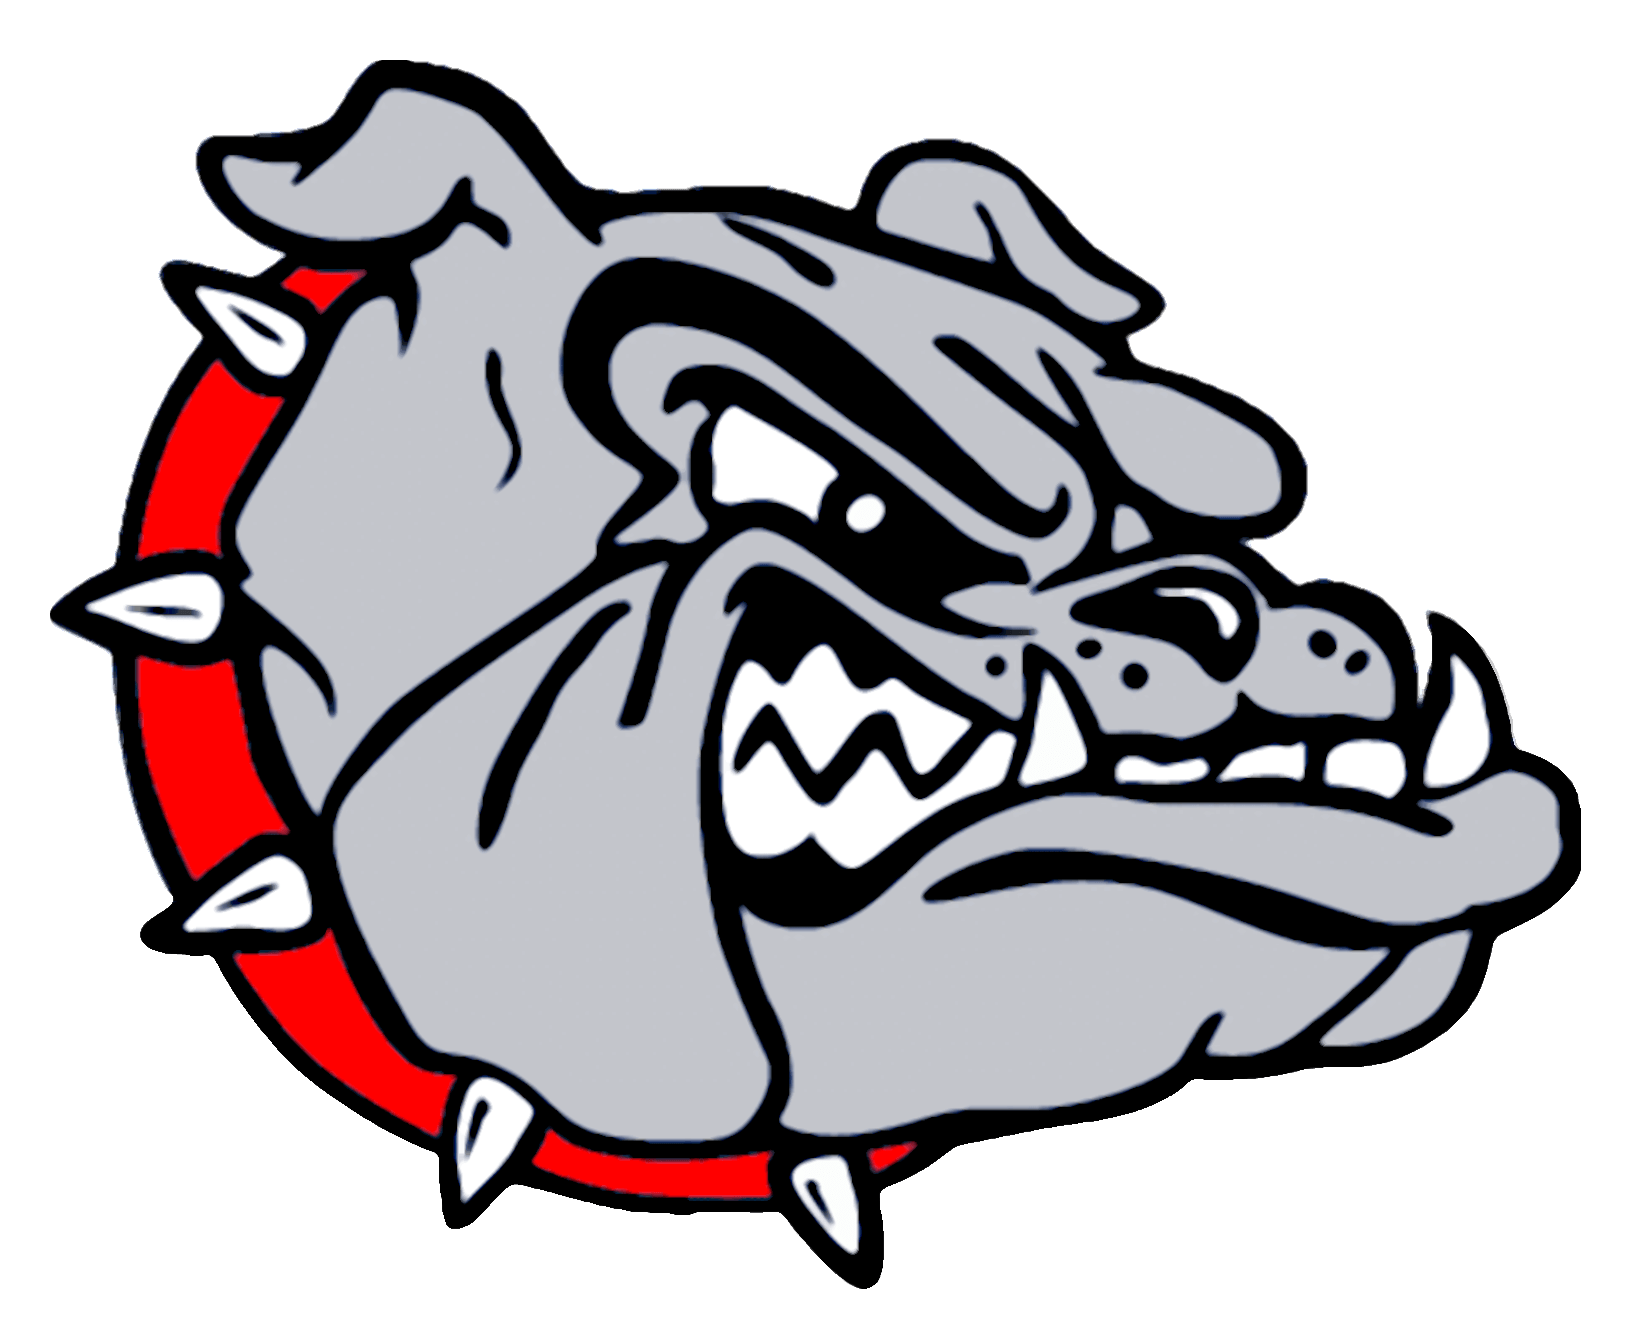 Clipart of bulldogs mascots royalty free library Bulldog Mascot Cliparts - Cliparts Zone royalty free library